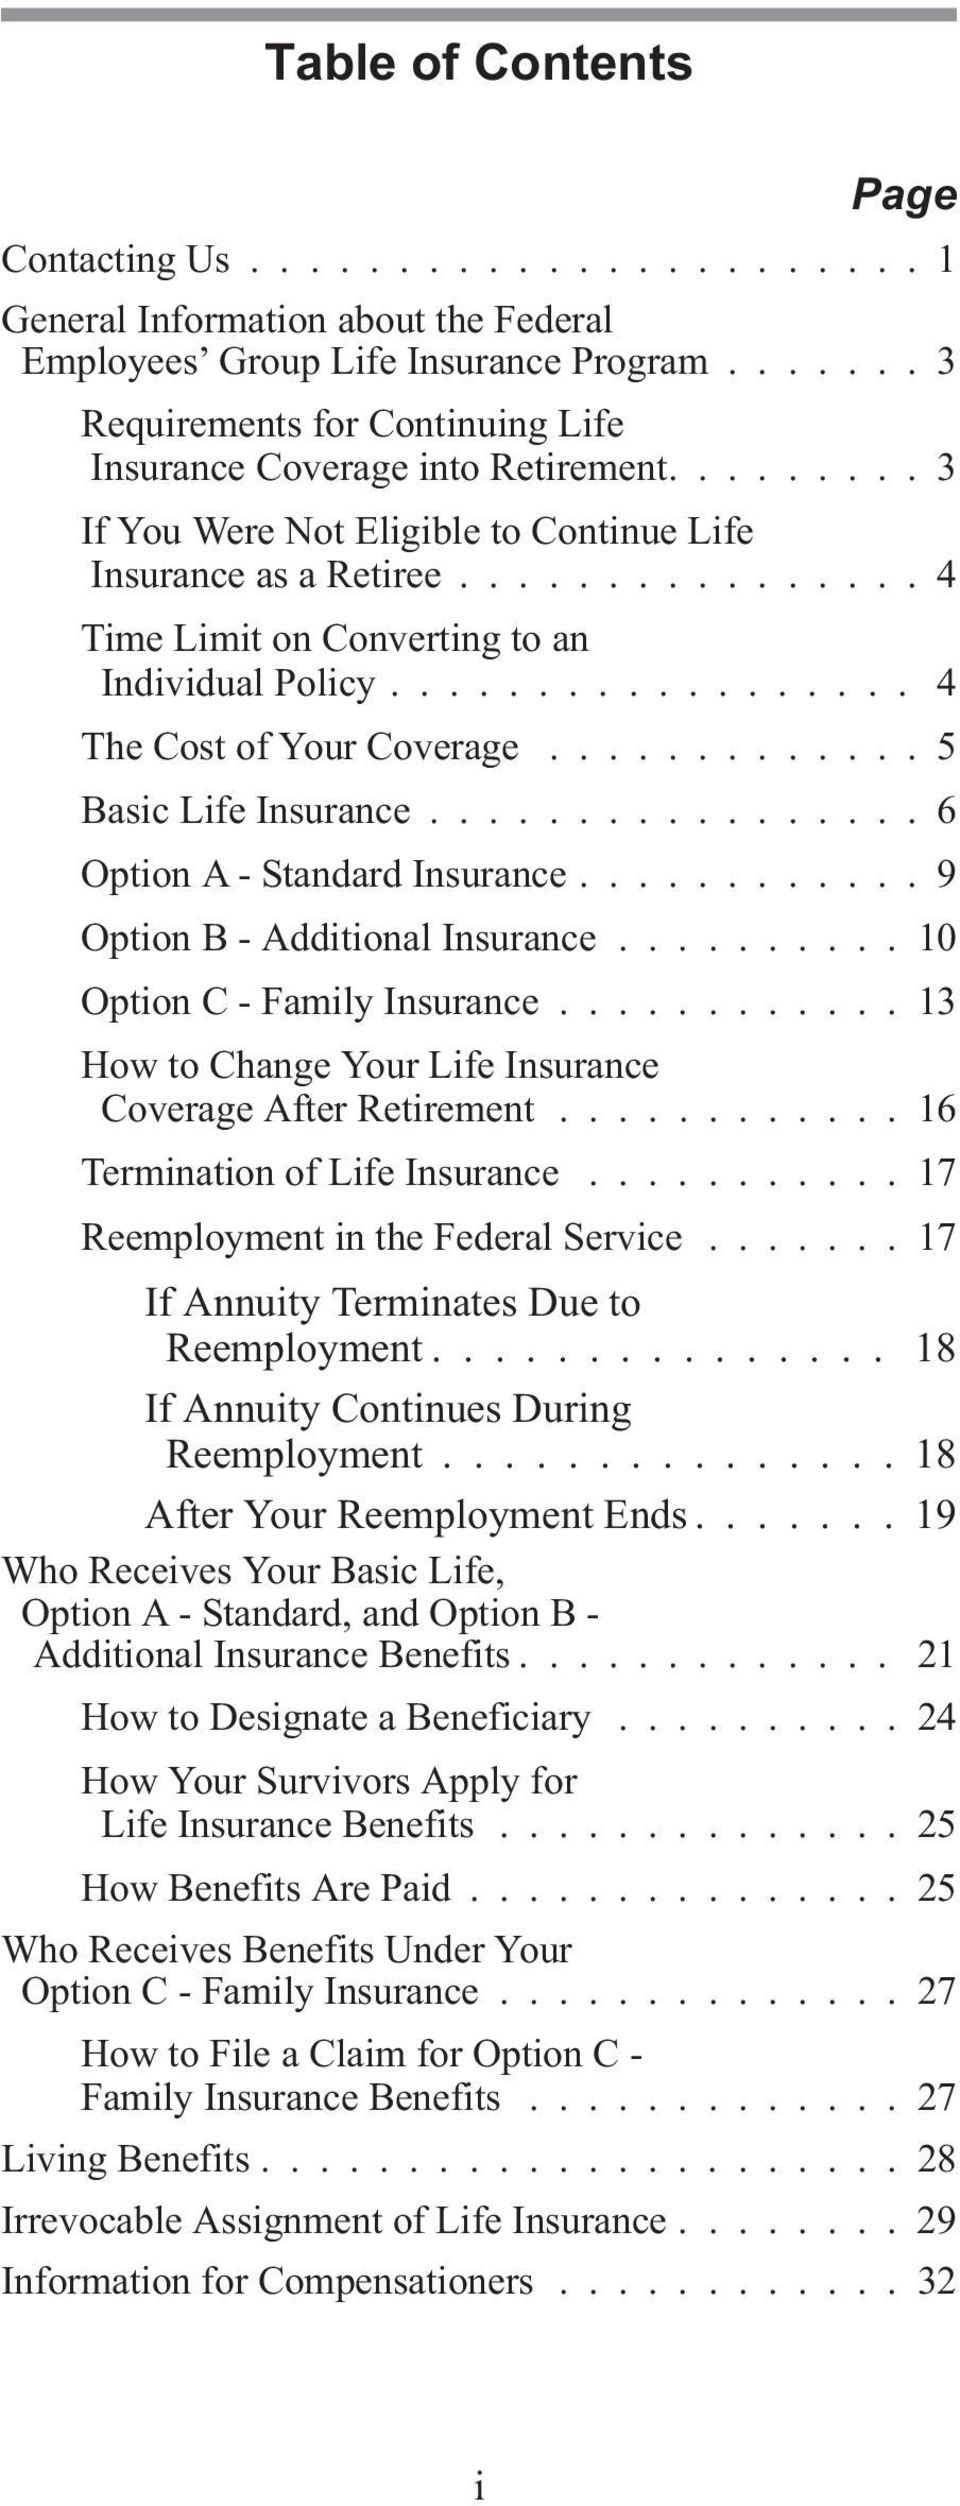 ............... 4 Time Limit on Converting to an Individual Policy... 4 The Cost of Your Coverage............. 5 Basic Life Insurance................. 6 Option A - Standard Insurance.